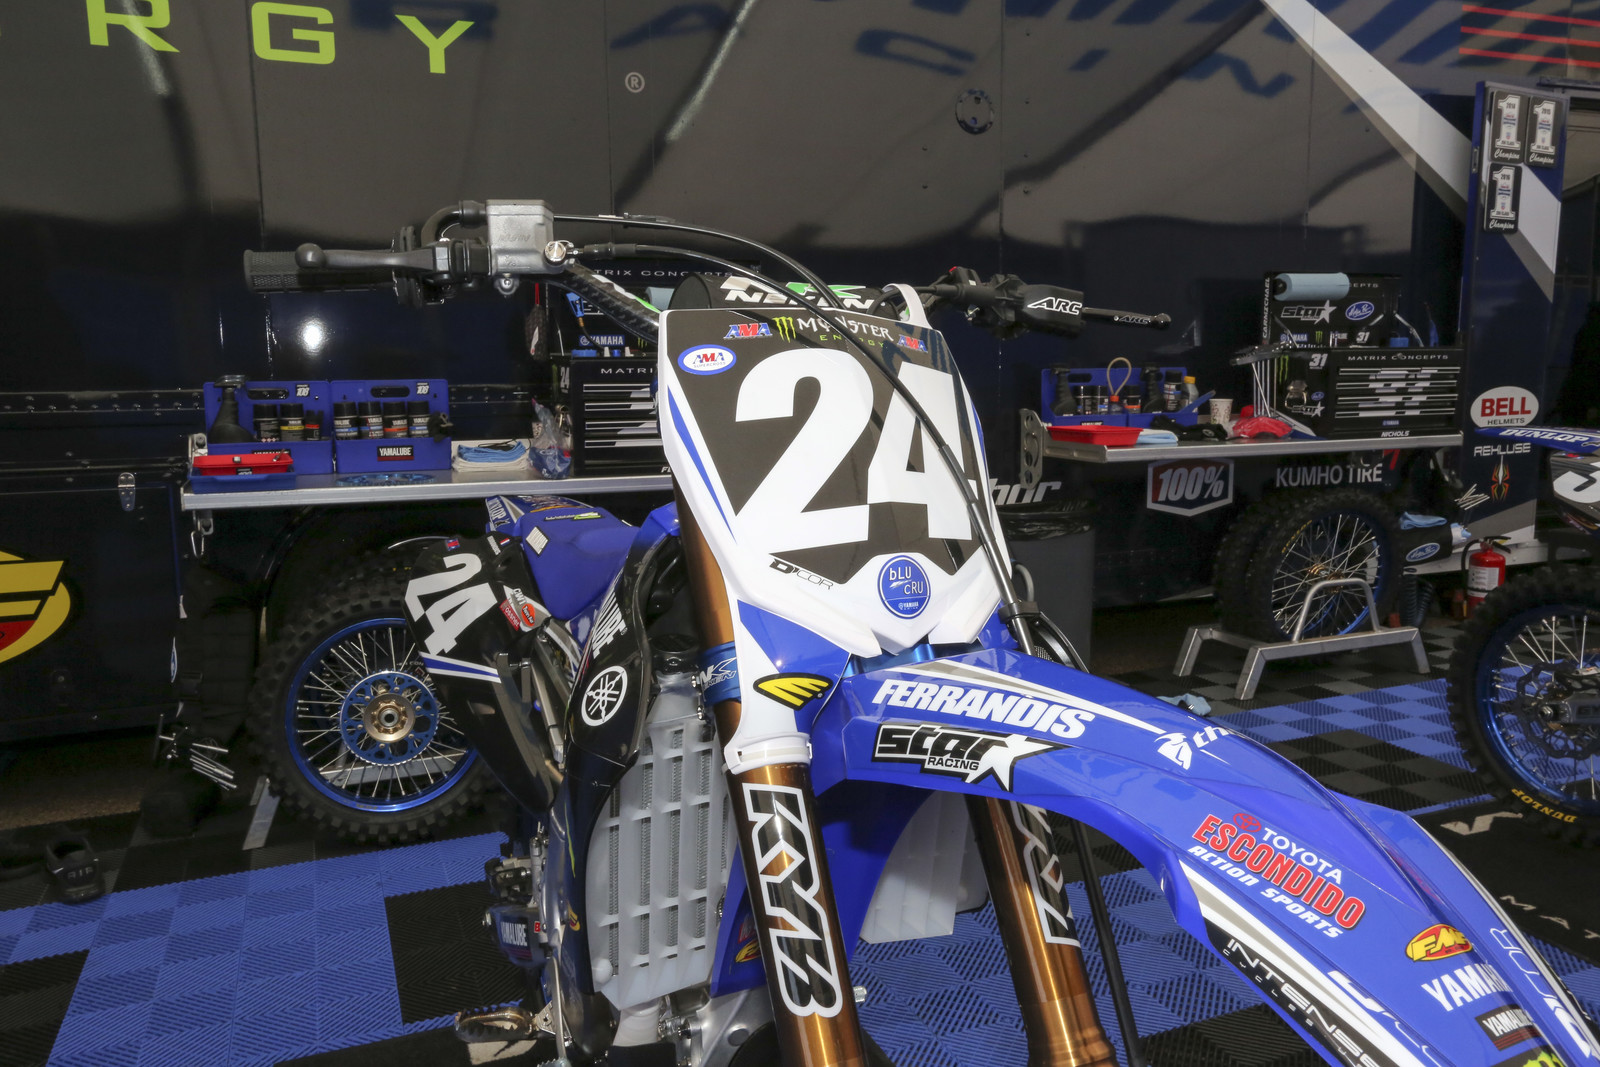 9W6A7026 - A Day at AT&T Stadium - Motocross Pictures - Vital MX